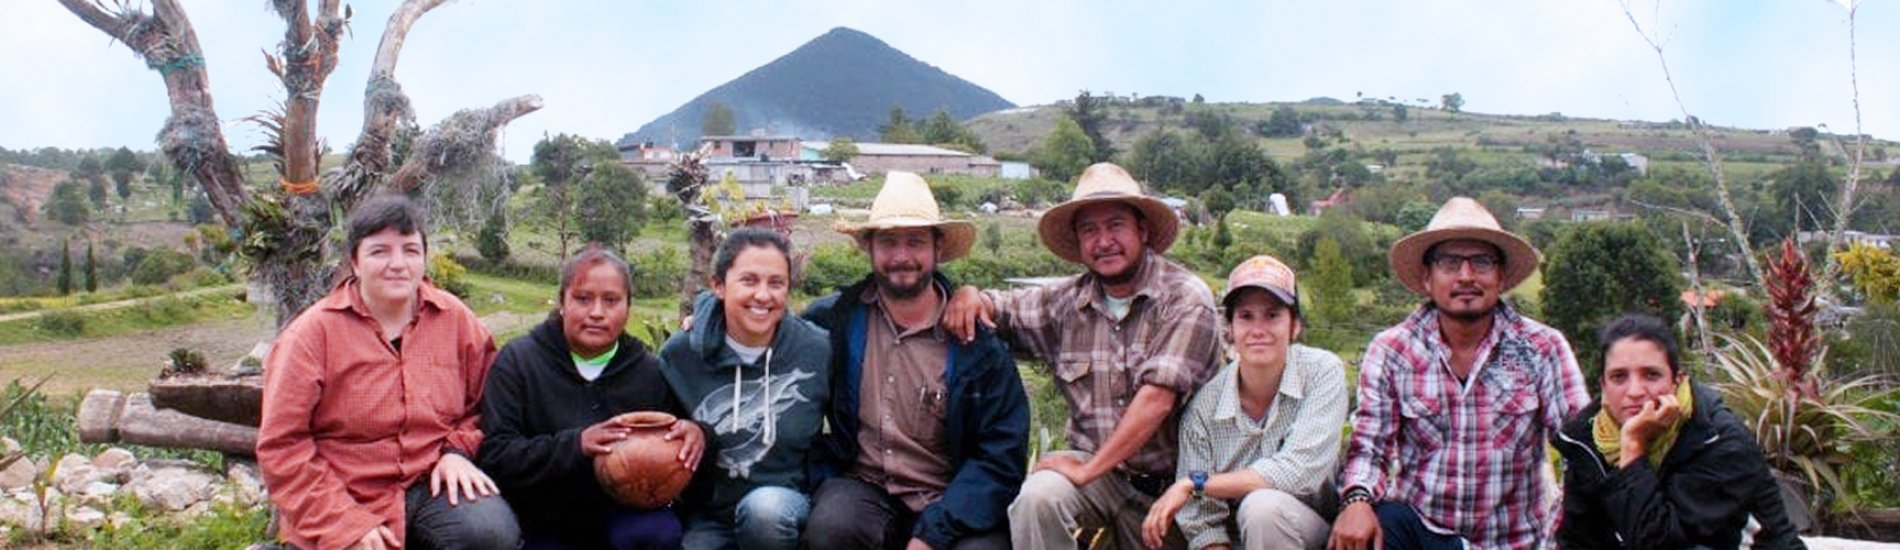 Research team of the Tonaltepec Ethnoarchaeological Project led by Dr. Verónica Pérez Rodriguez